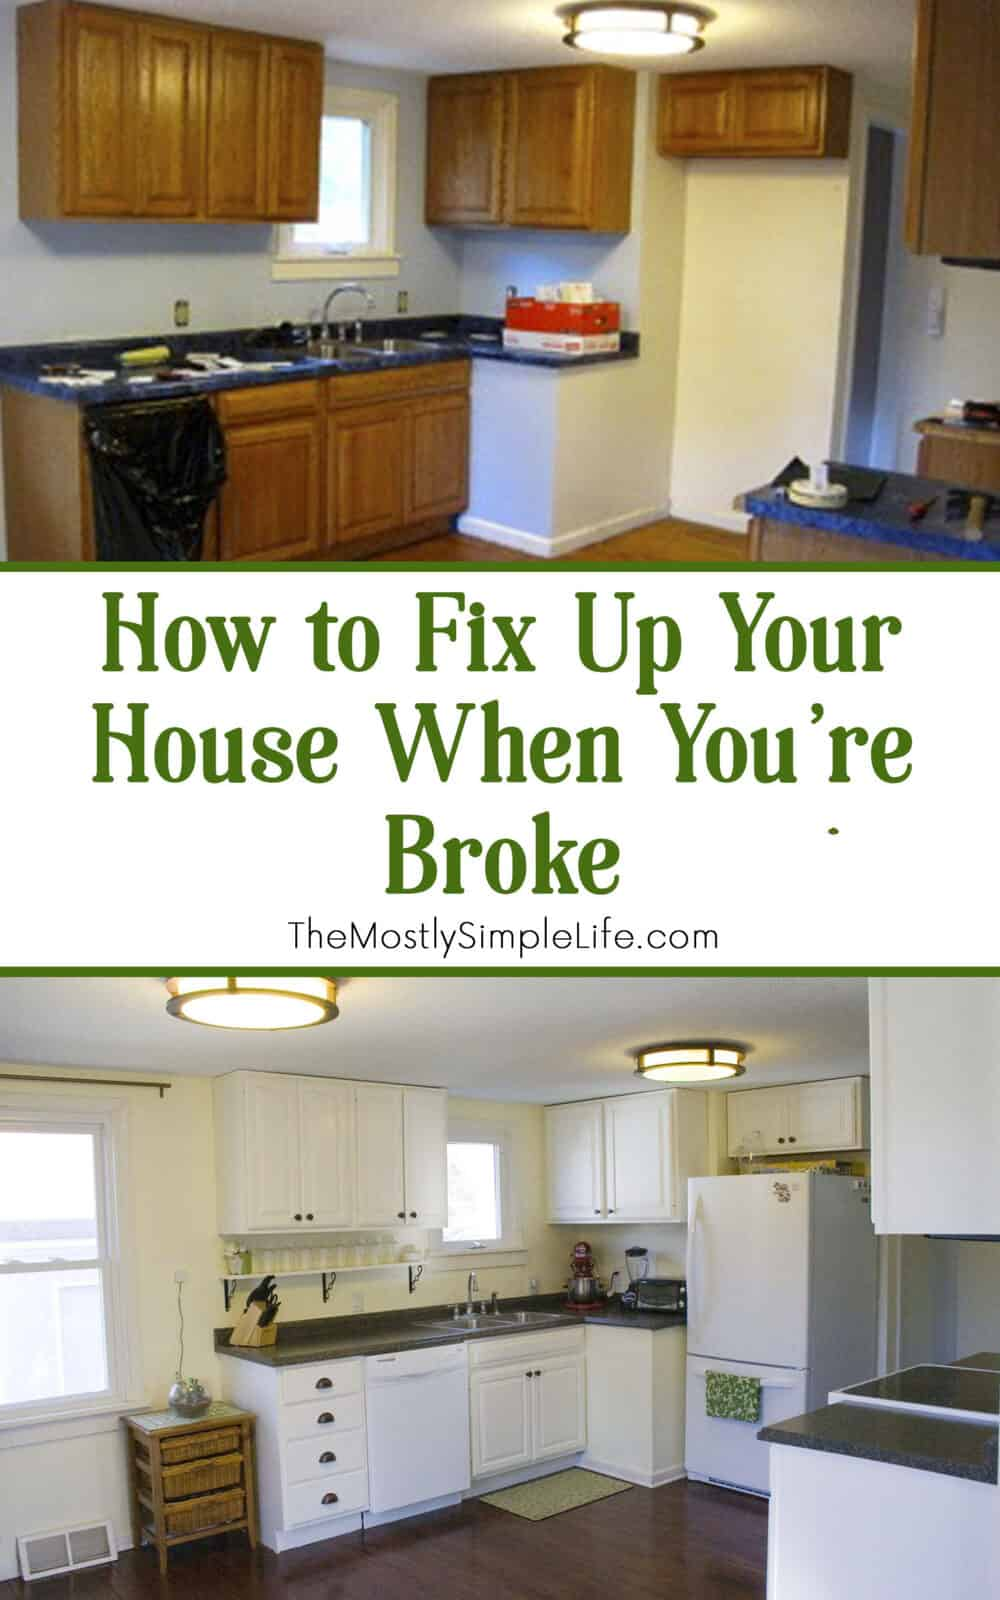 How to Fix Up Your House When You\'re Broke - The (mostly) Simple Life